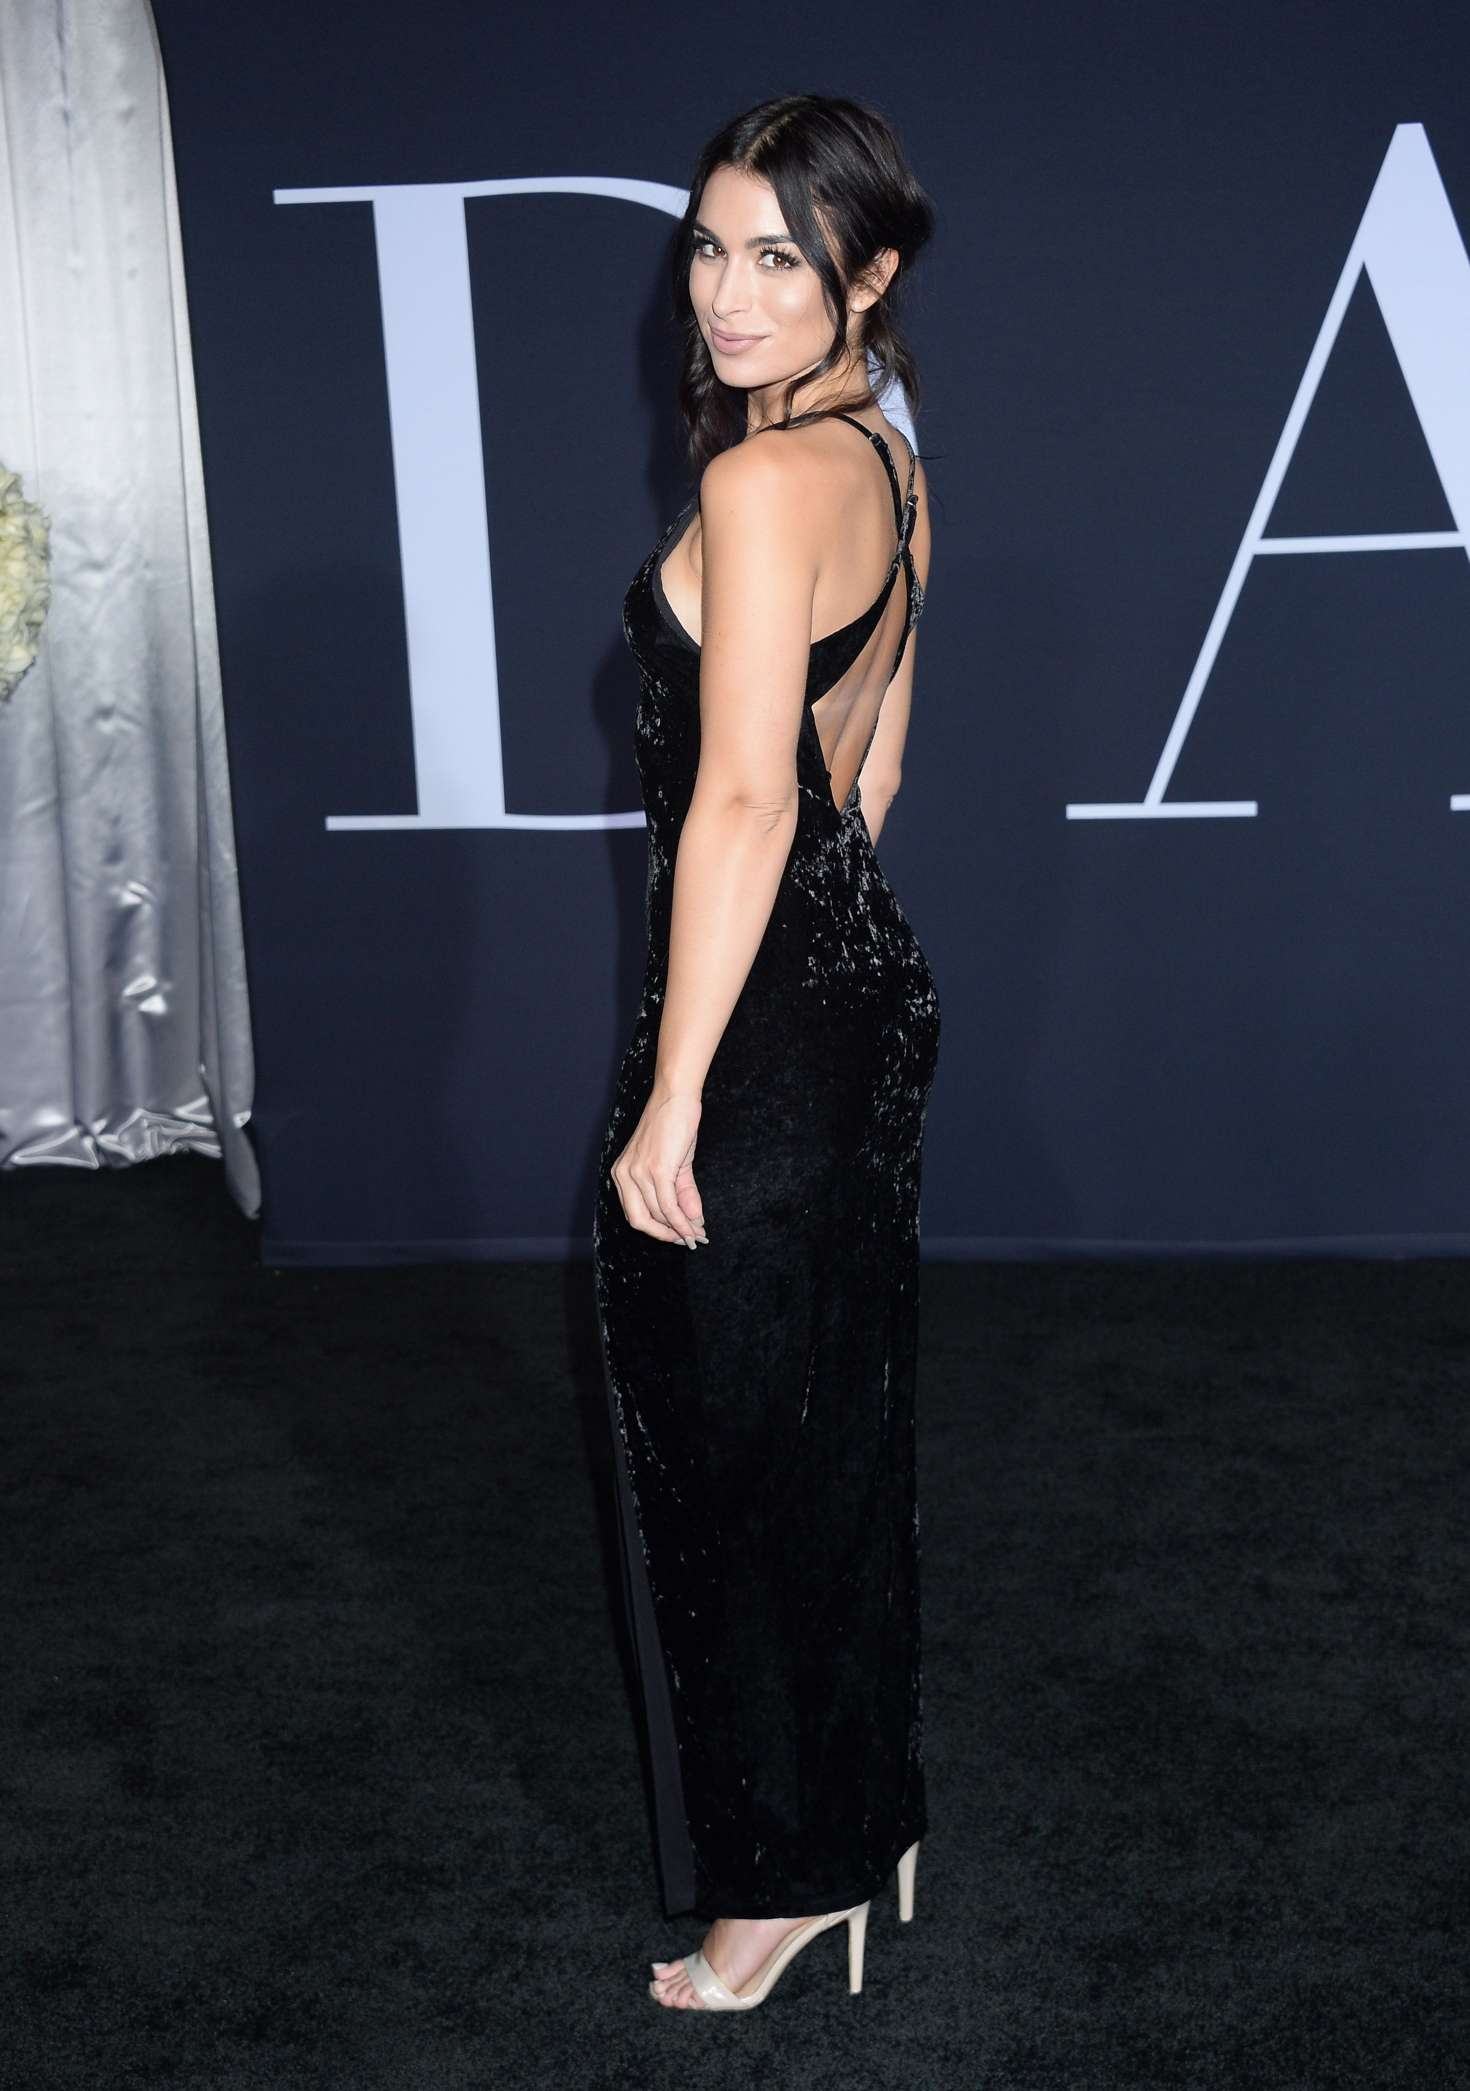 Ashley iaconetti fifty shades darker premiere in los angeles new picture